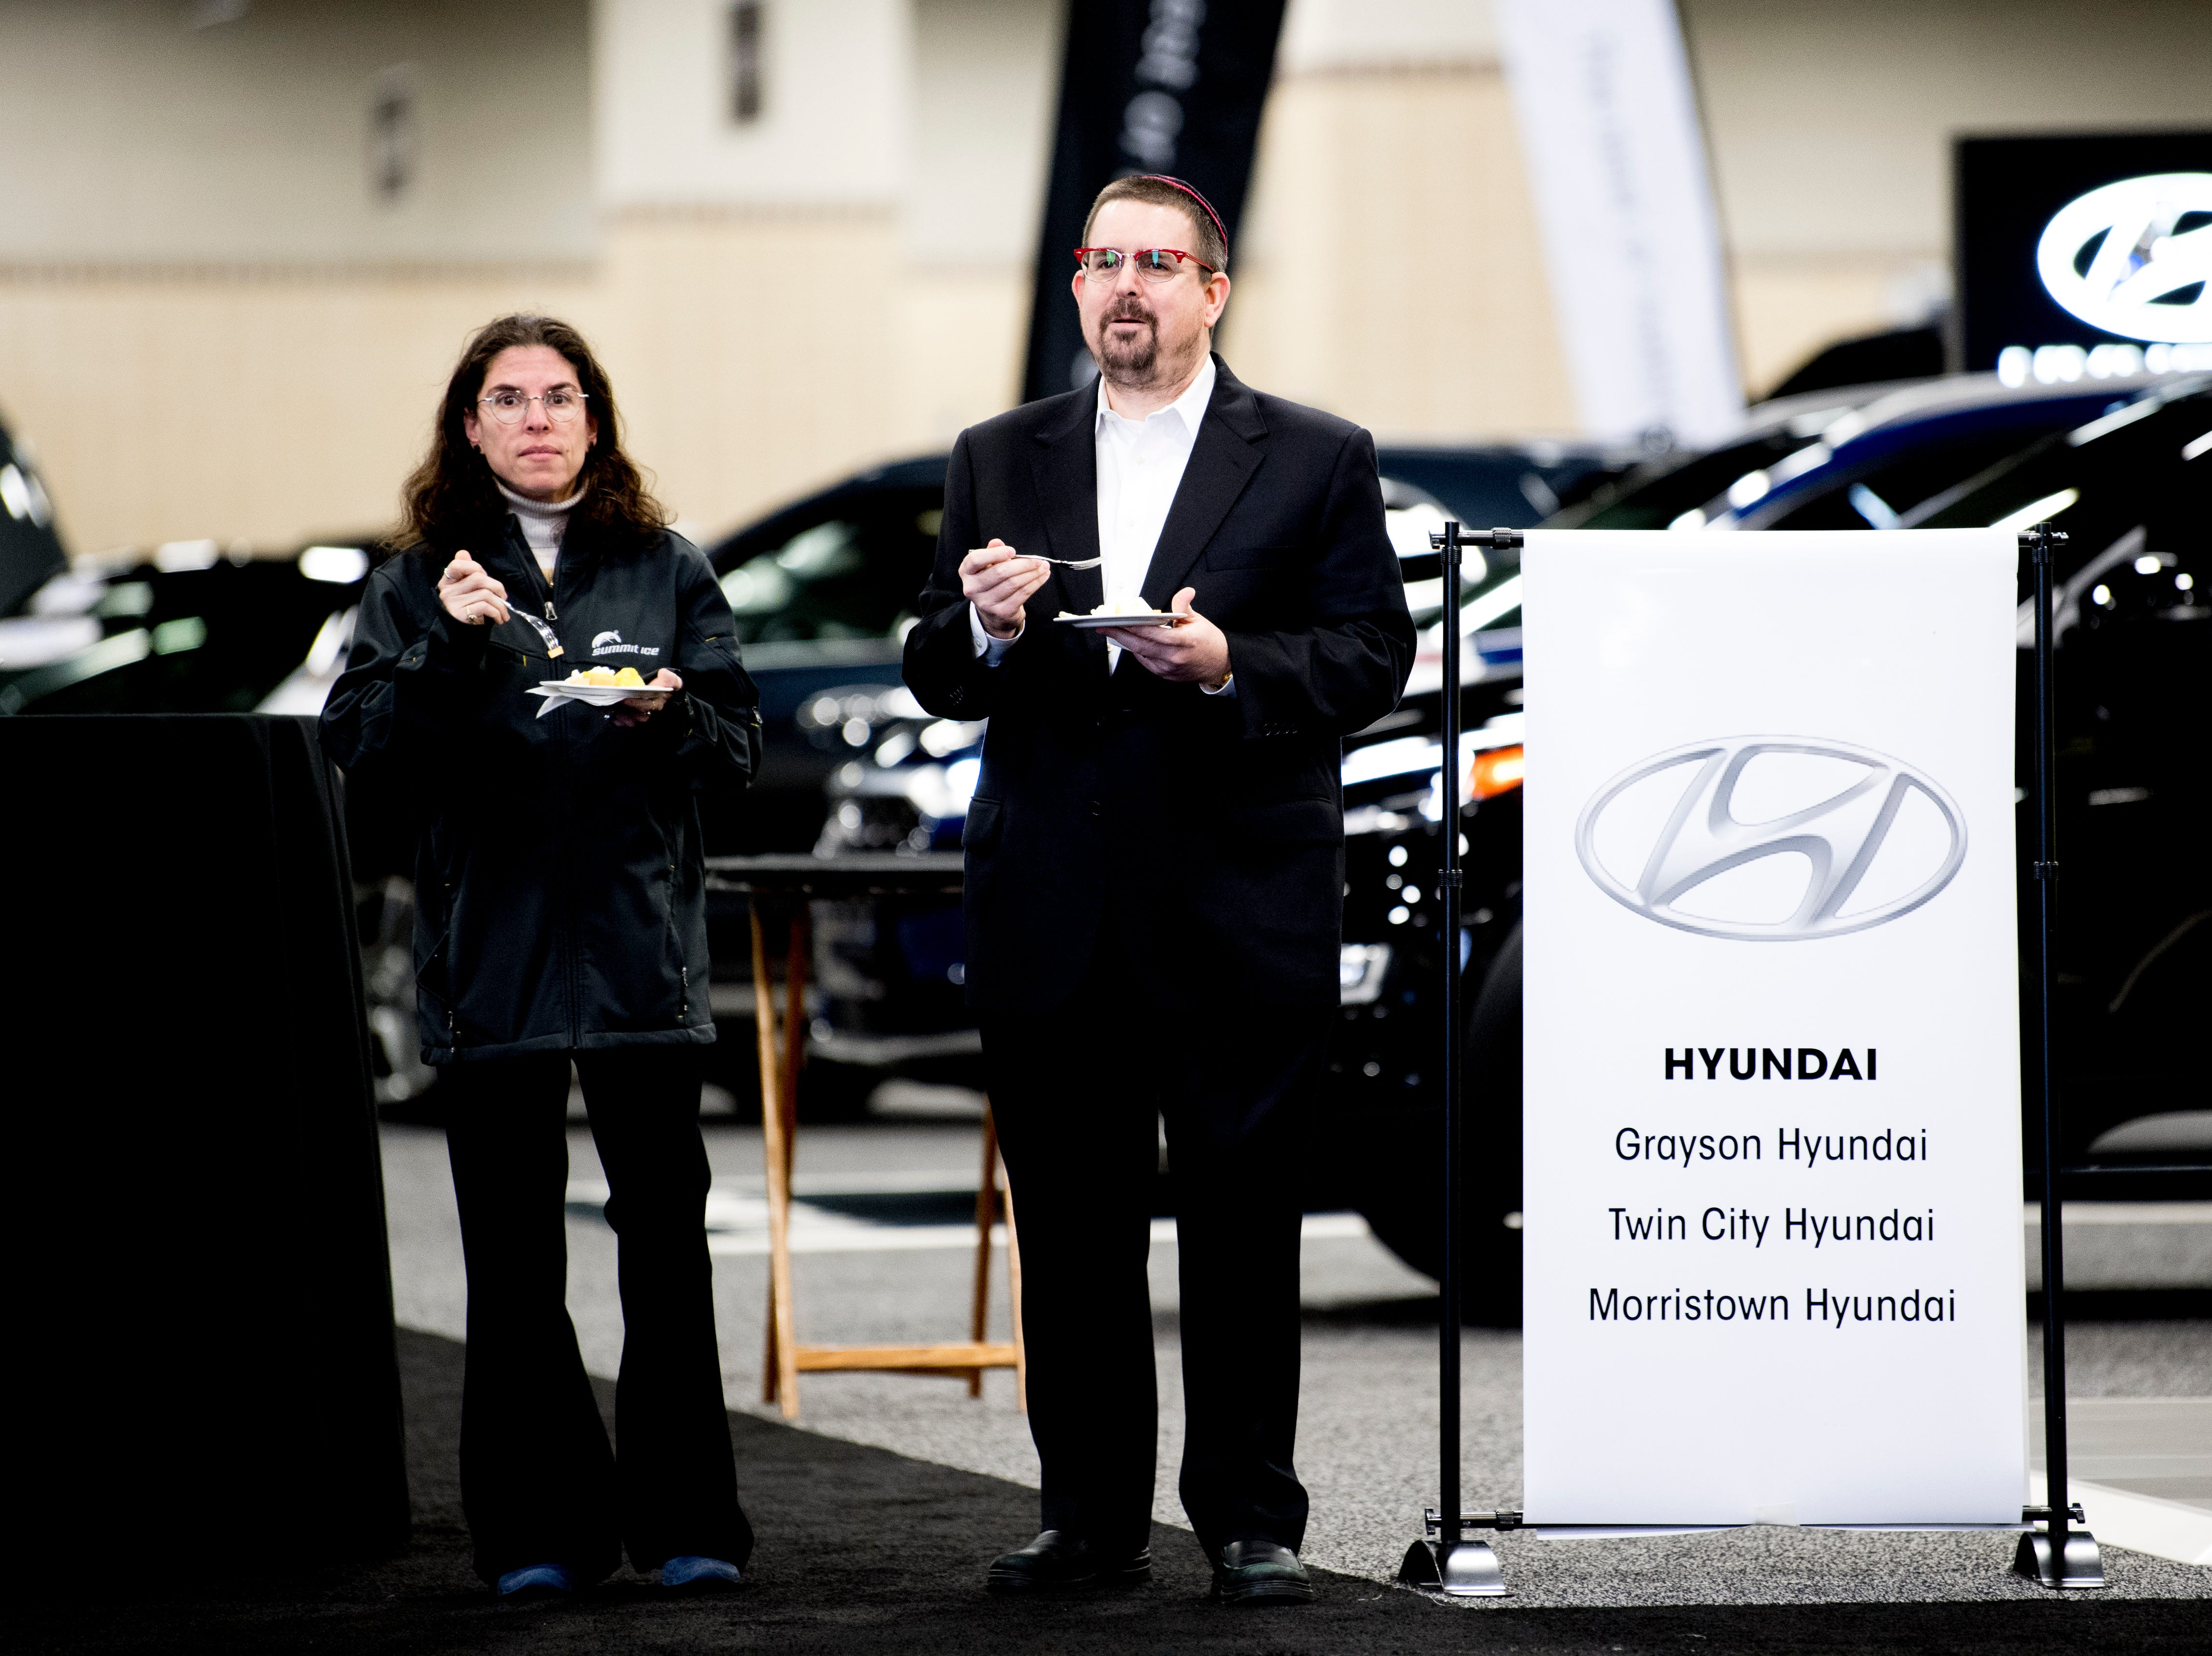 Batya Boxt, left, and Rabbi Erin Boxt, of Rocky Hill, look at vehicles at the Knox News Auto Show preview party in the Knoxville Convention Center in Knoxville, Tennessee on Thursday, February 21, 2019.